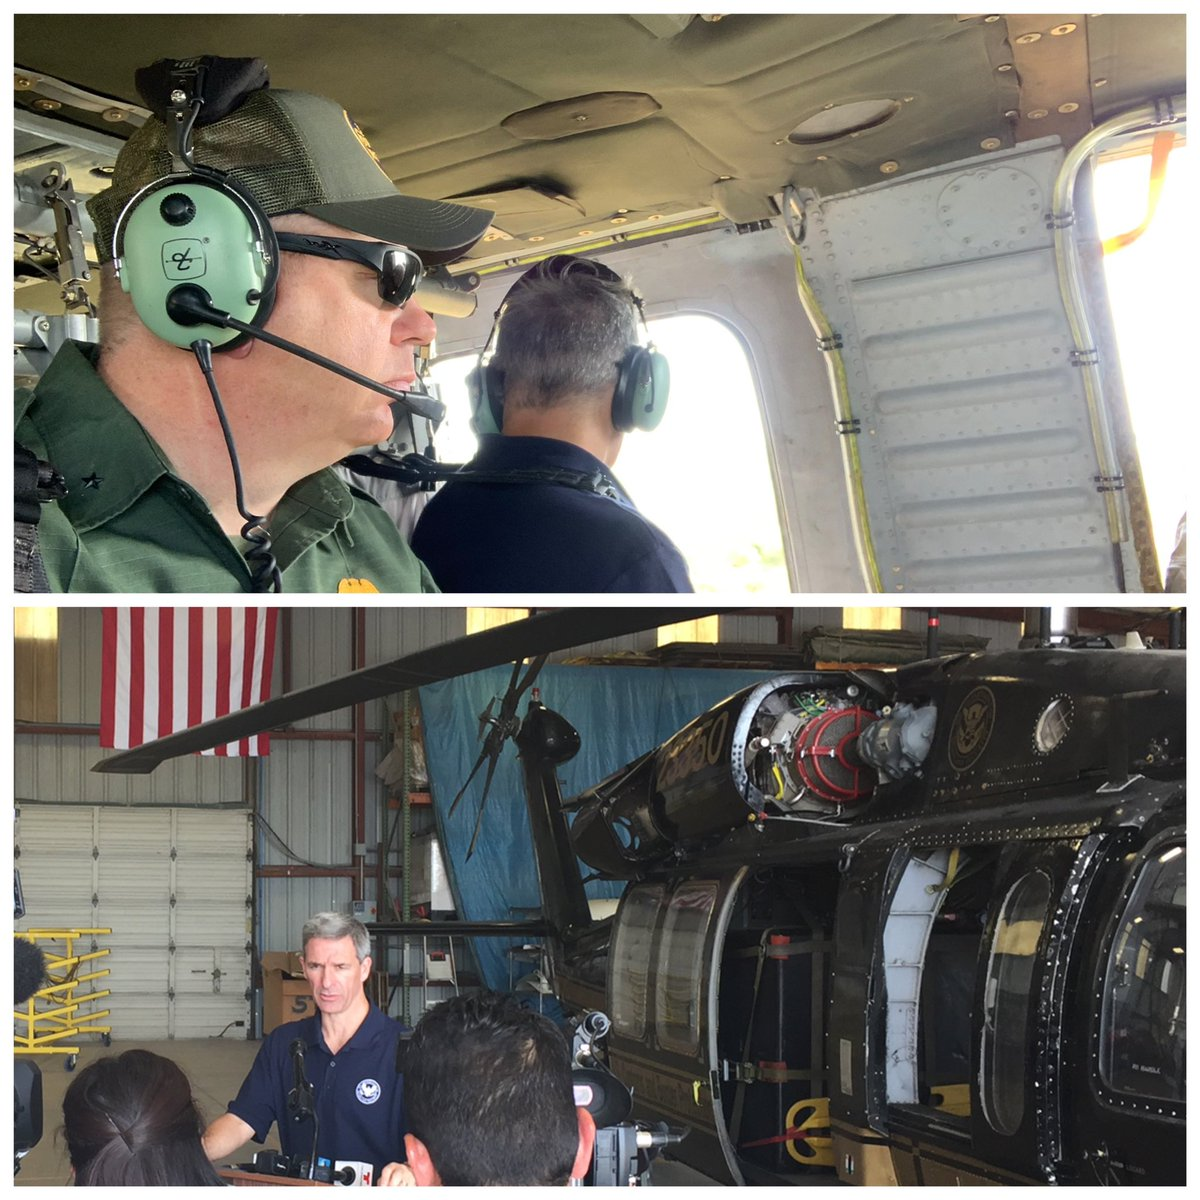 Today, Acting Citizenship and Immigration Services Director Kenneth Cuccinelli joined me for an operational flight over the #RGV border area. He then took some questions from local media.  Big thanks to our outstanding #CBP #AMO personnel here in the Valley.<br>http://pic.twitter.com/XqKJTsLsqh